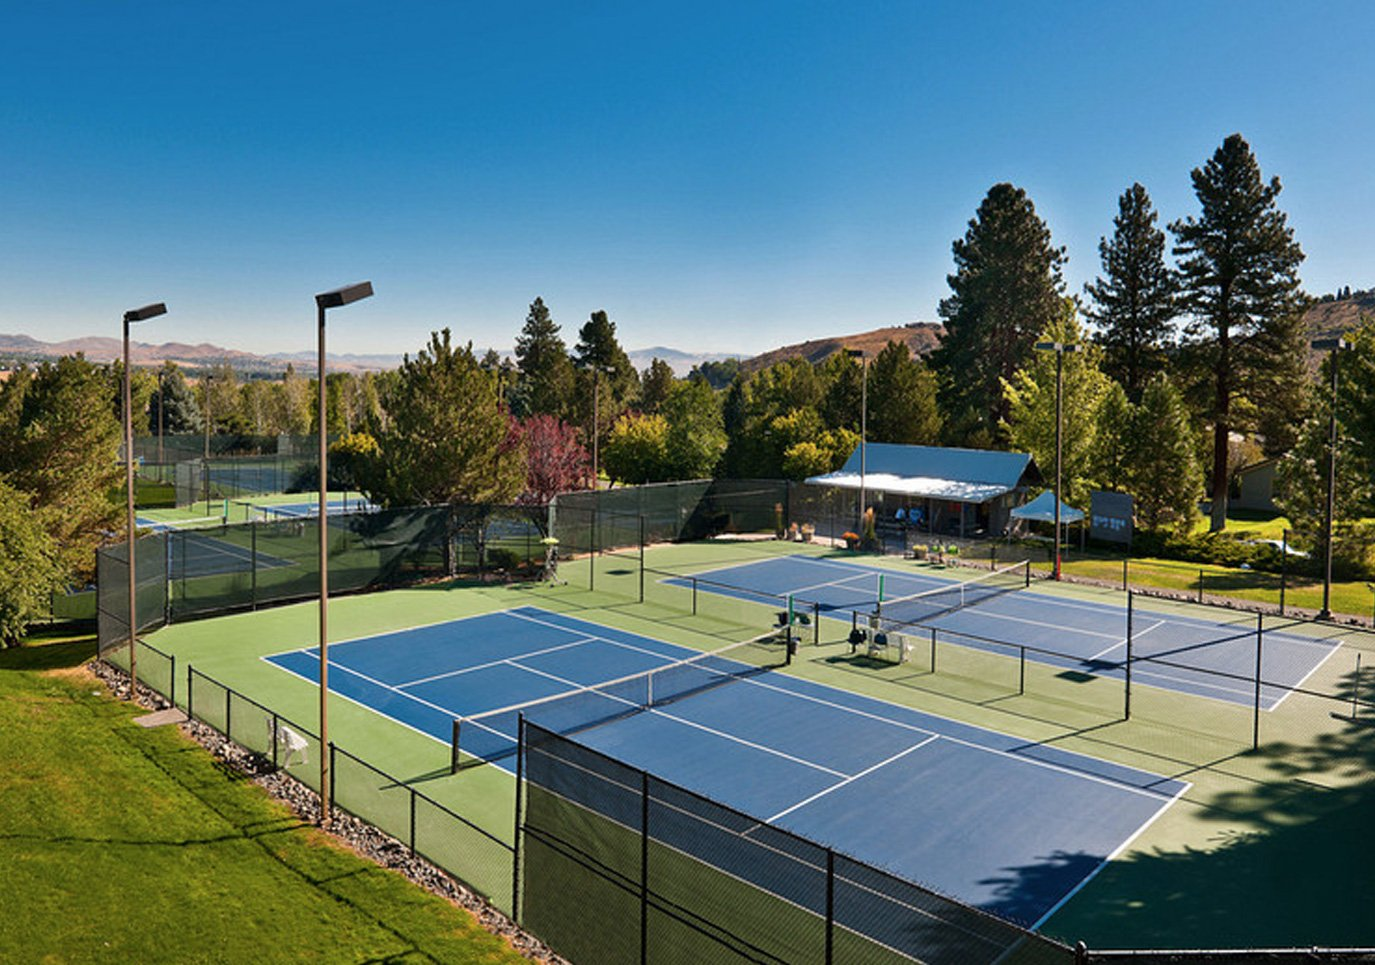 Caughlin Club, a private community clubhouse in Reno, NV designed by Dale Cox Architects